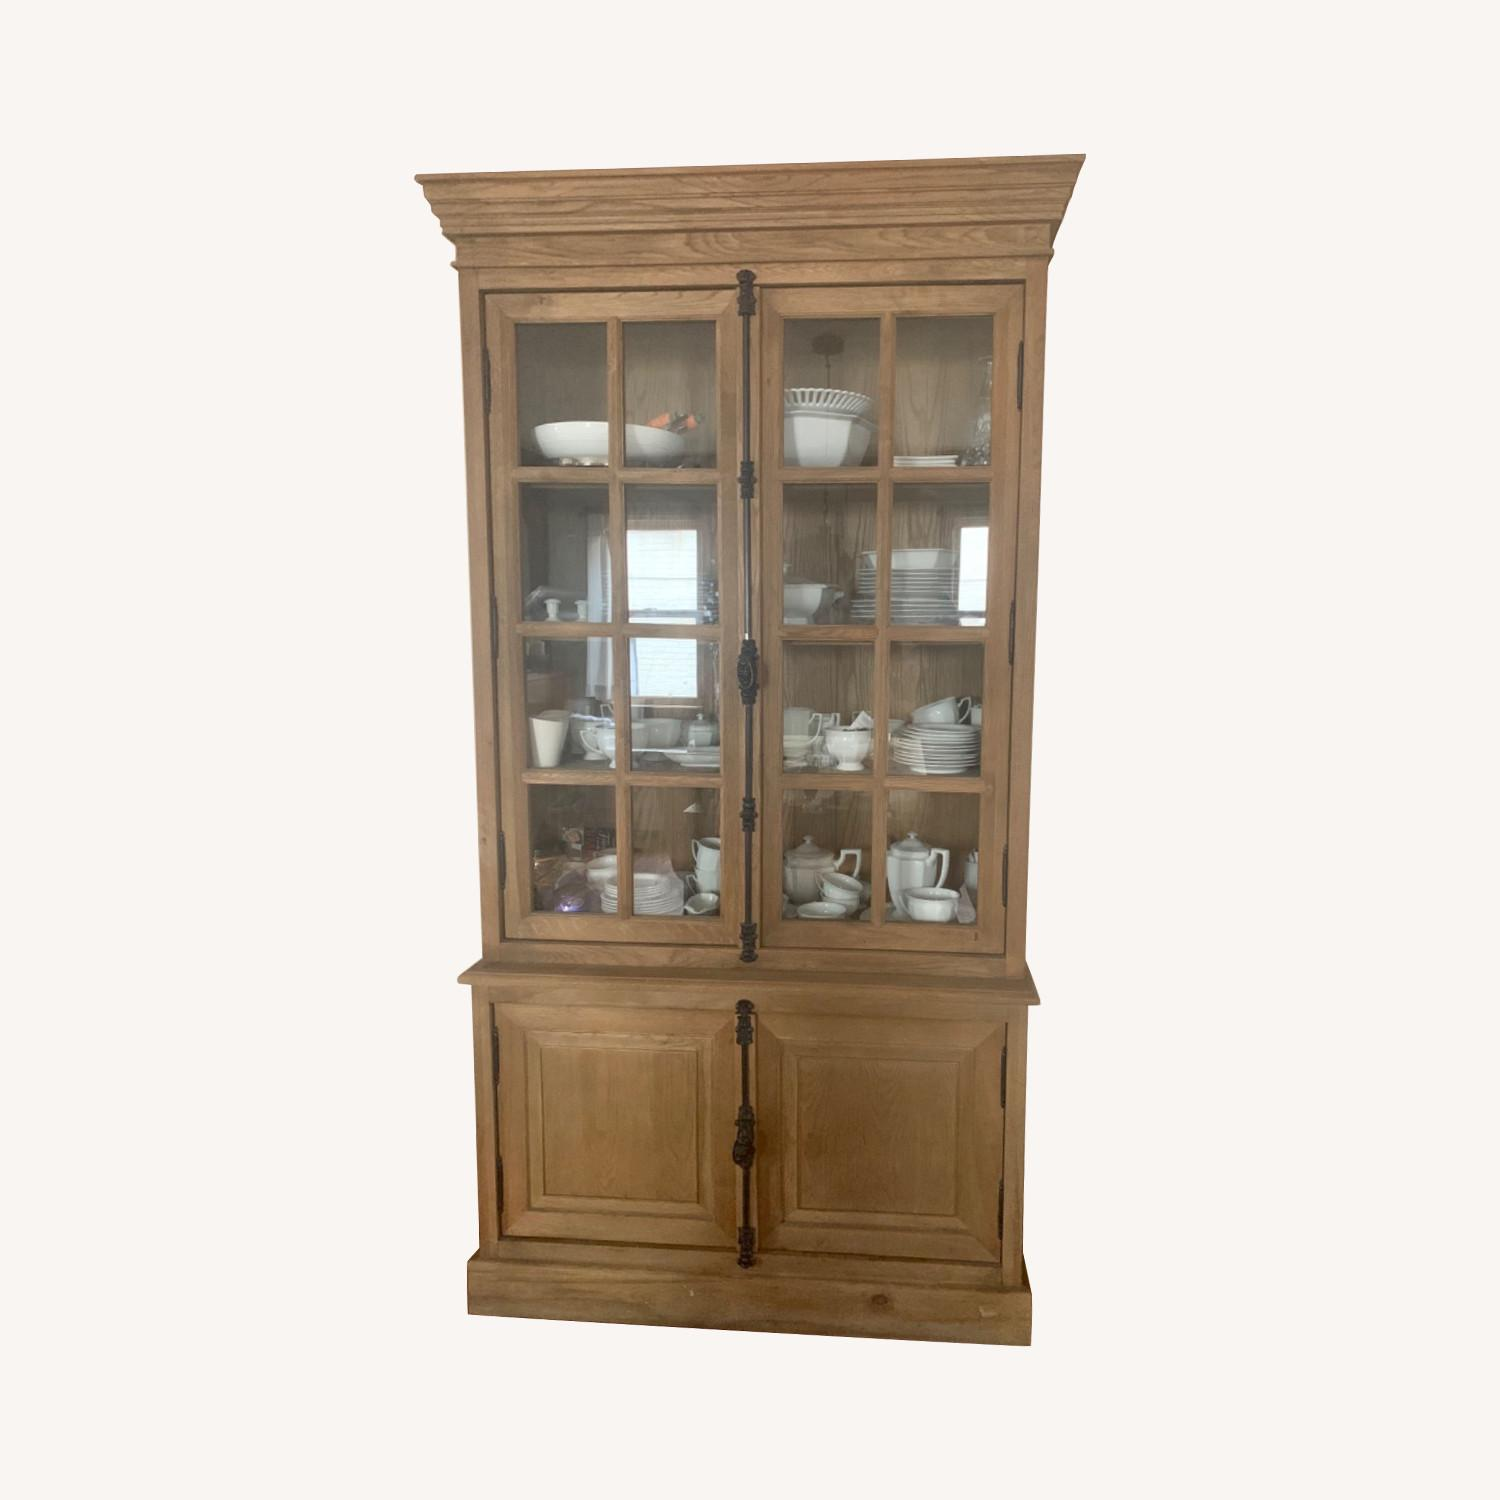 Restoration Hardware Oak French Cabinet - image-0